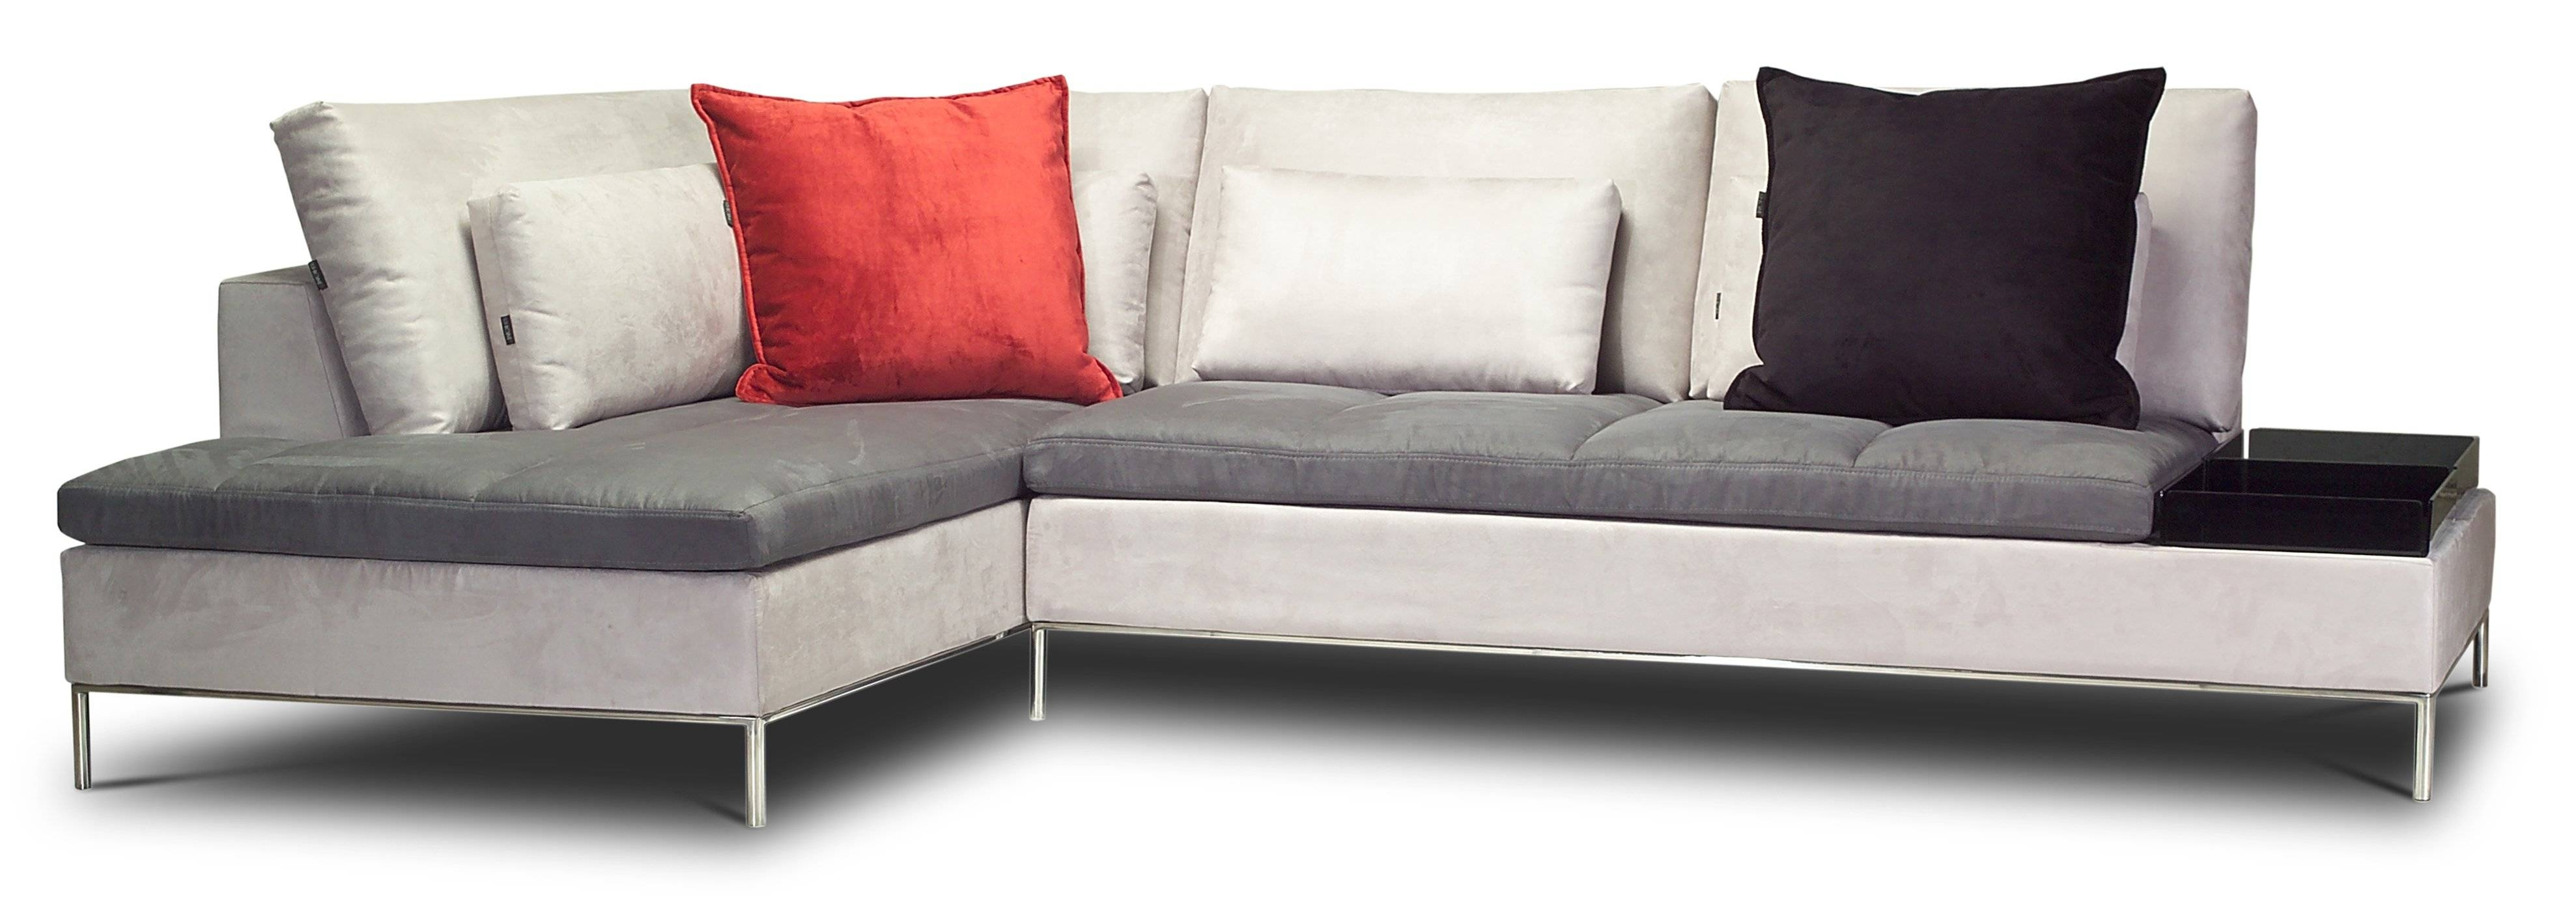 30 Inspirations of Modern Sofas Houston